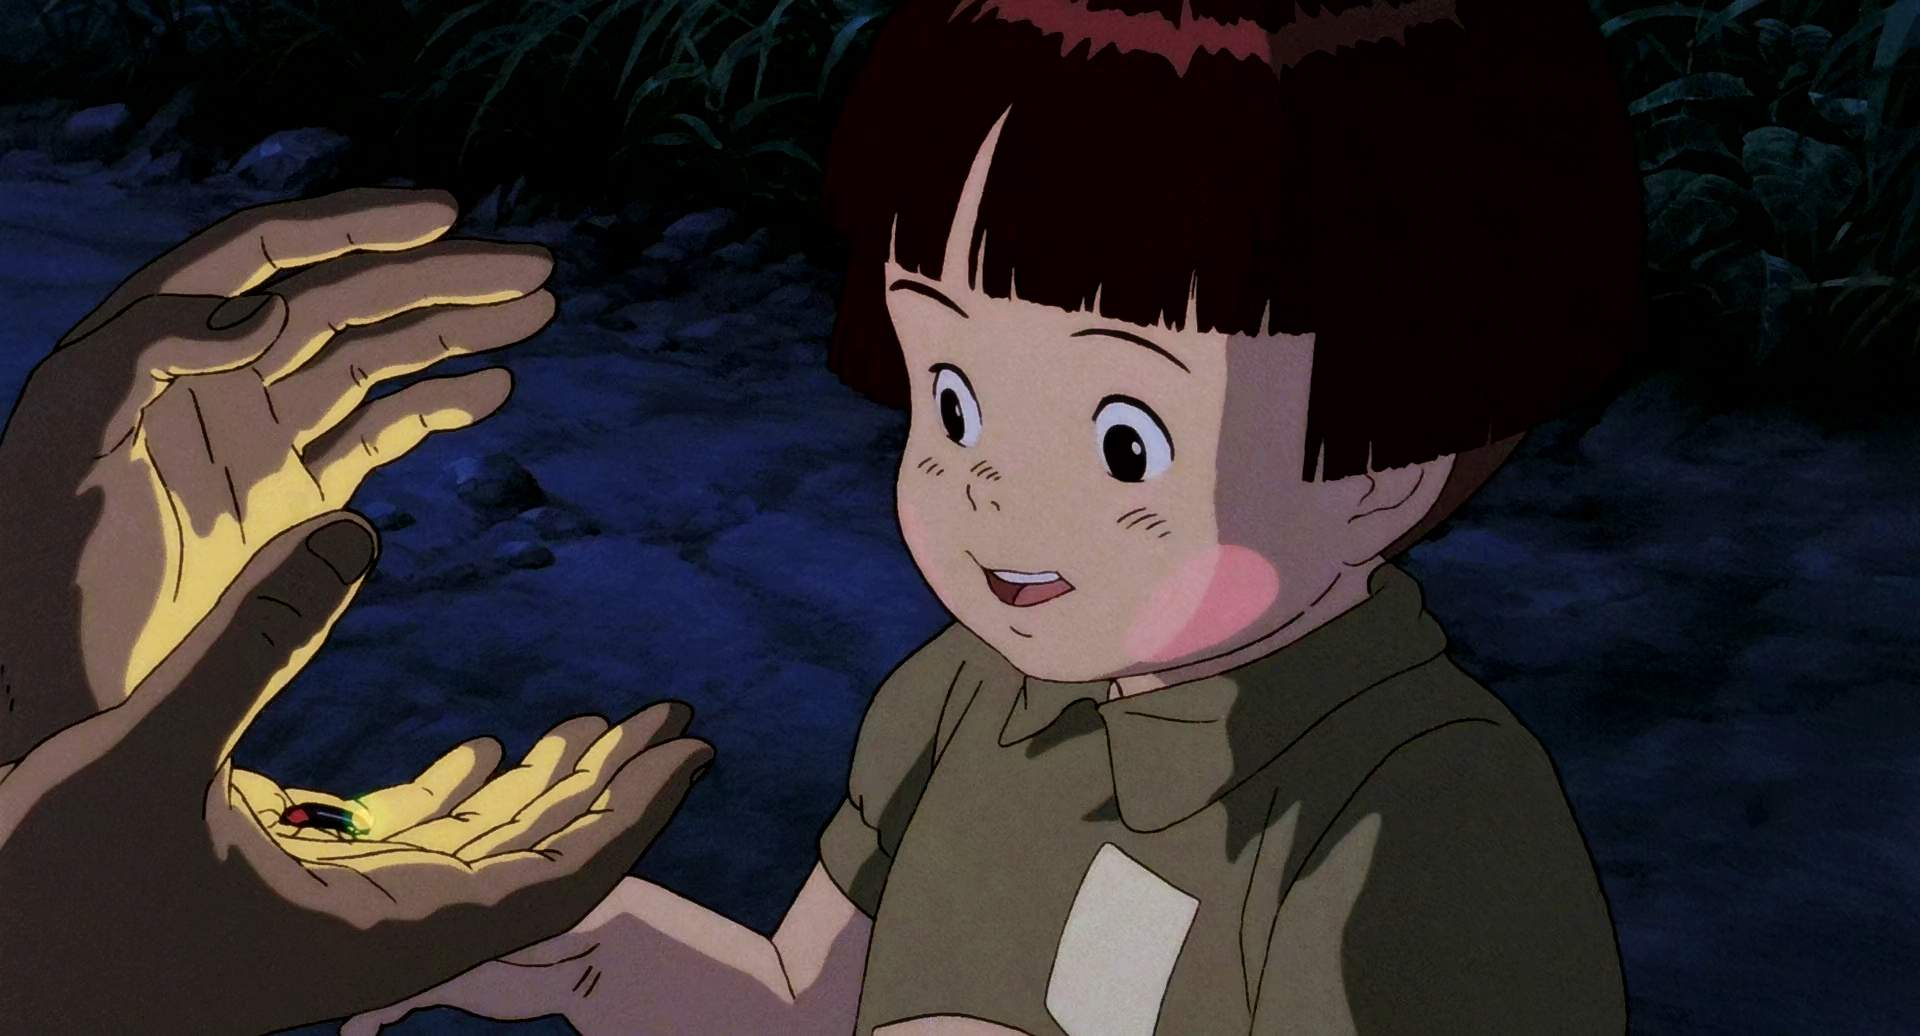 GraveoftheFireflies-Movie1988-SS3-O Grave of the Fireflies Movie Review